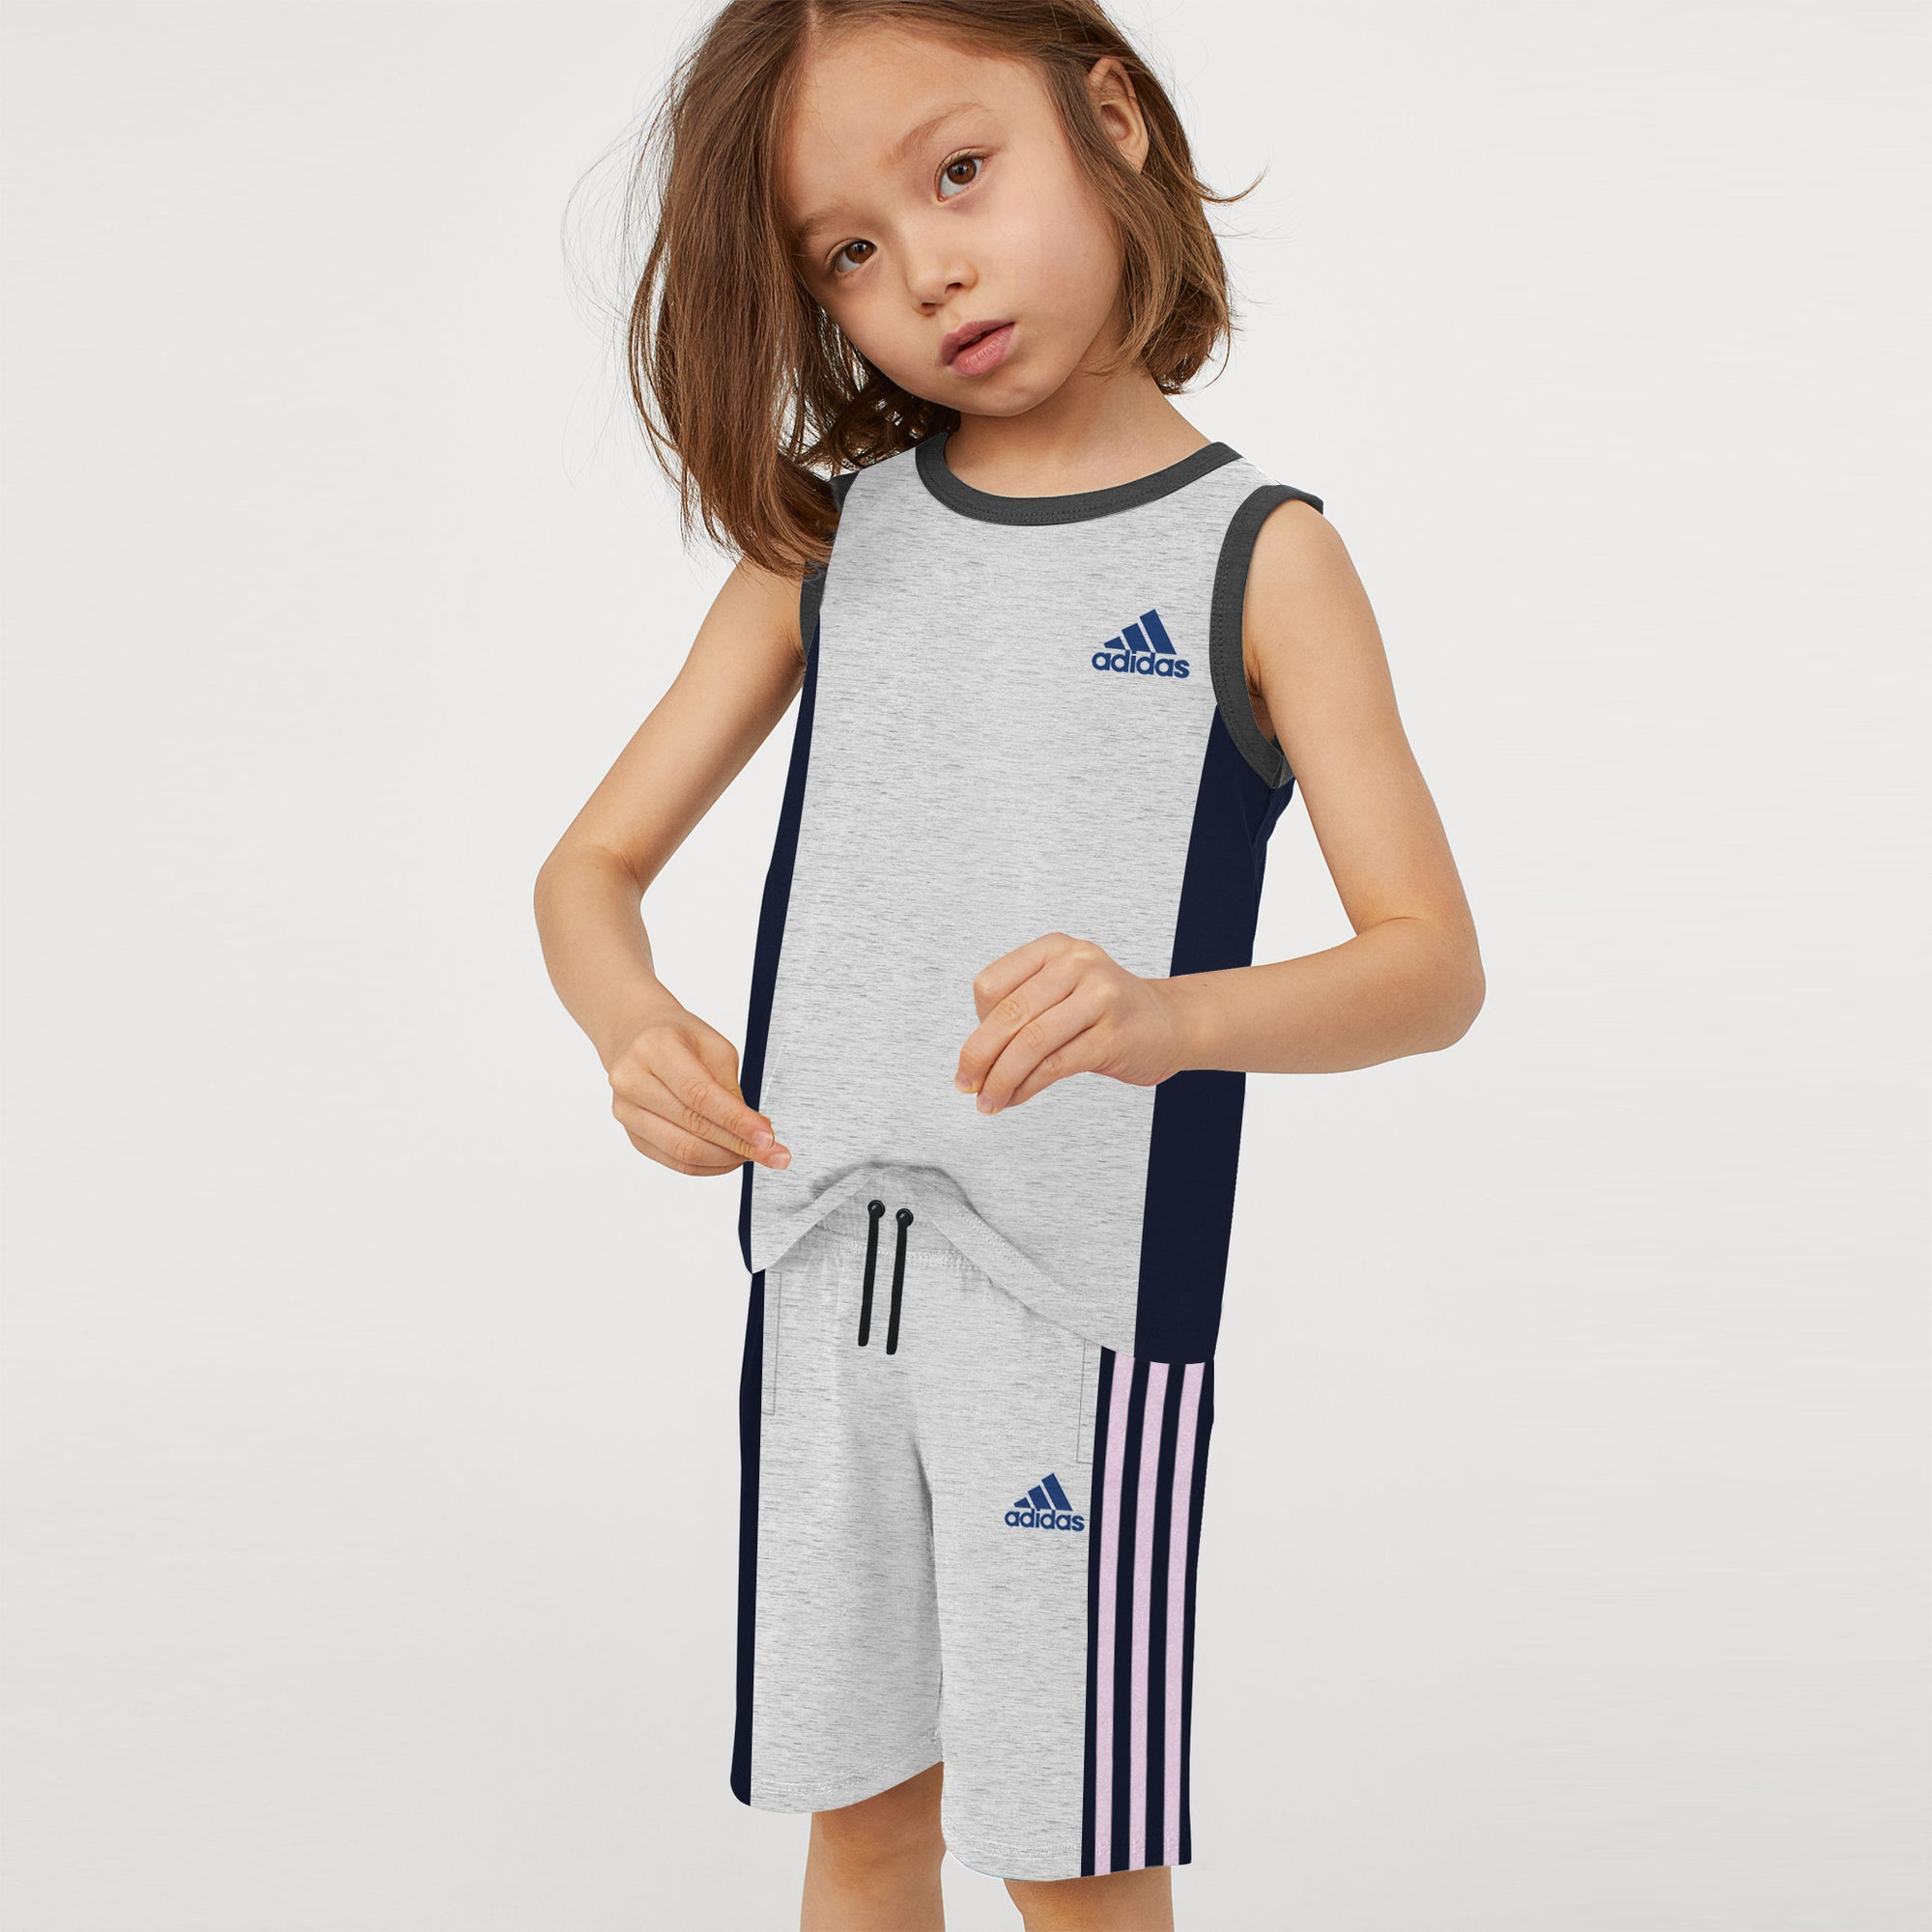 Adidas Single Jersey Sport Suit For Kids-Grey Melange & Navy-BE9013